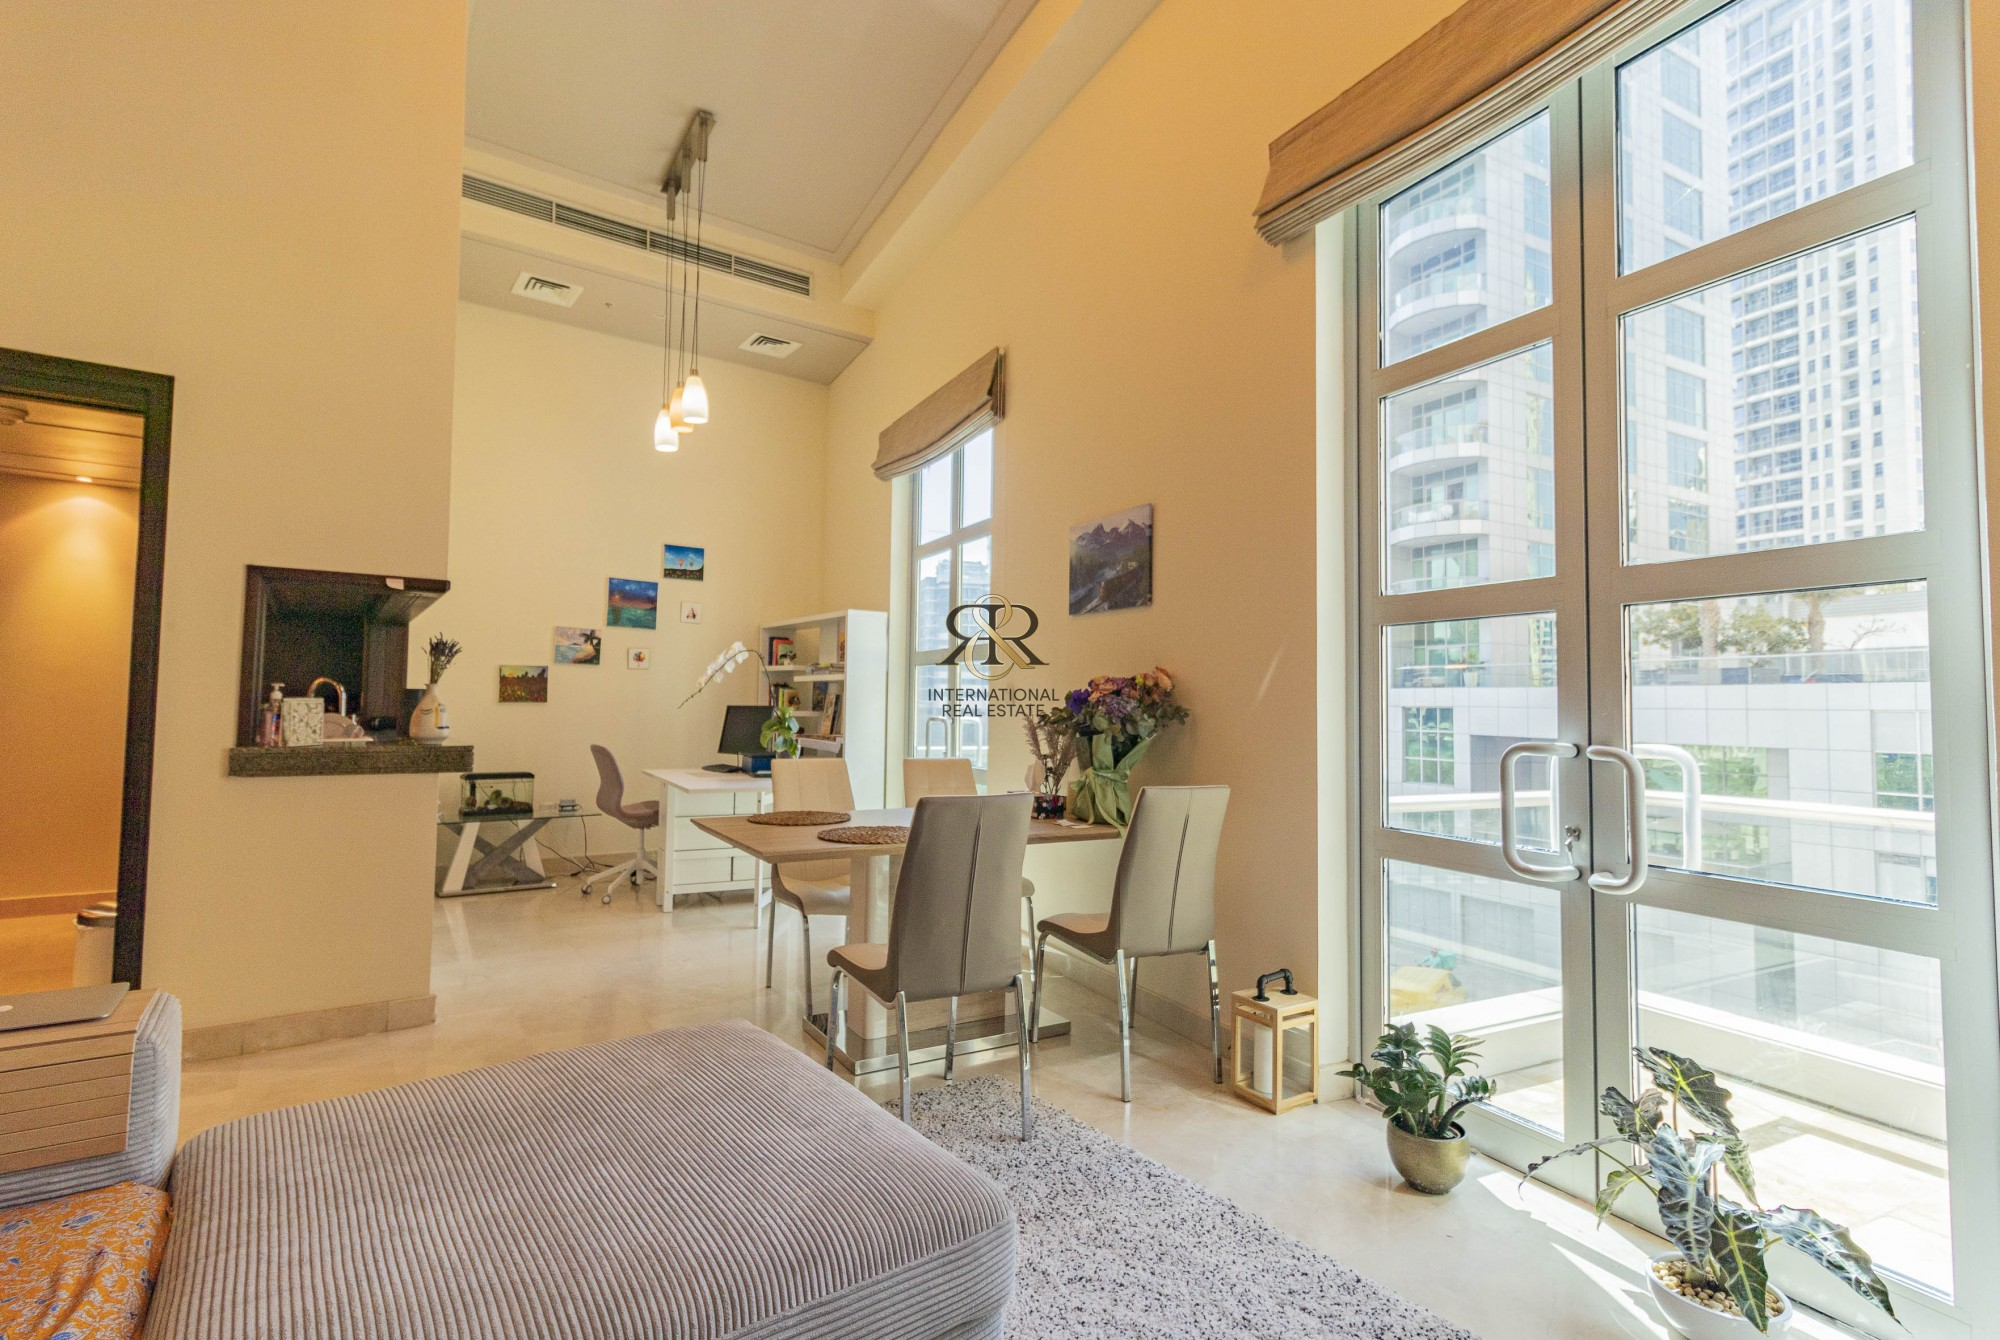 With 360 Video Tour | Large Terrace | Duplex Apartment | Well Maintained